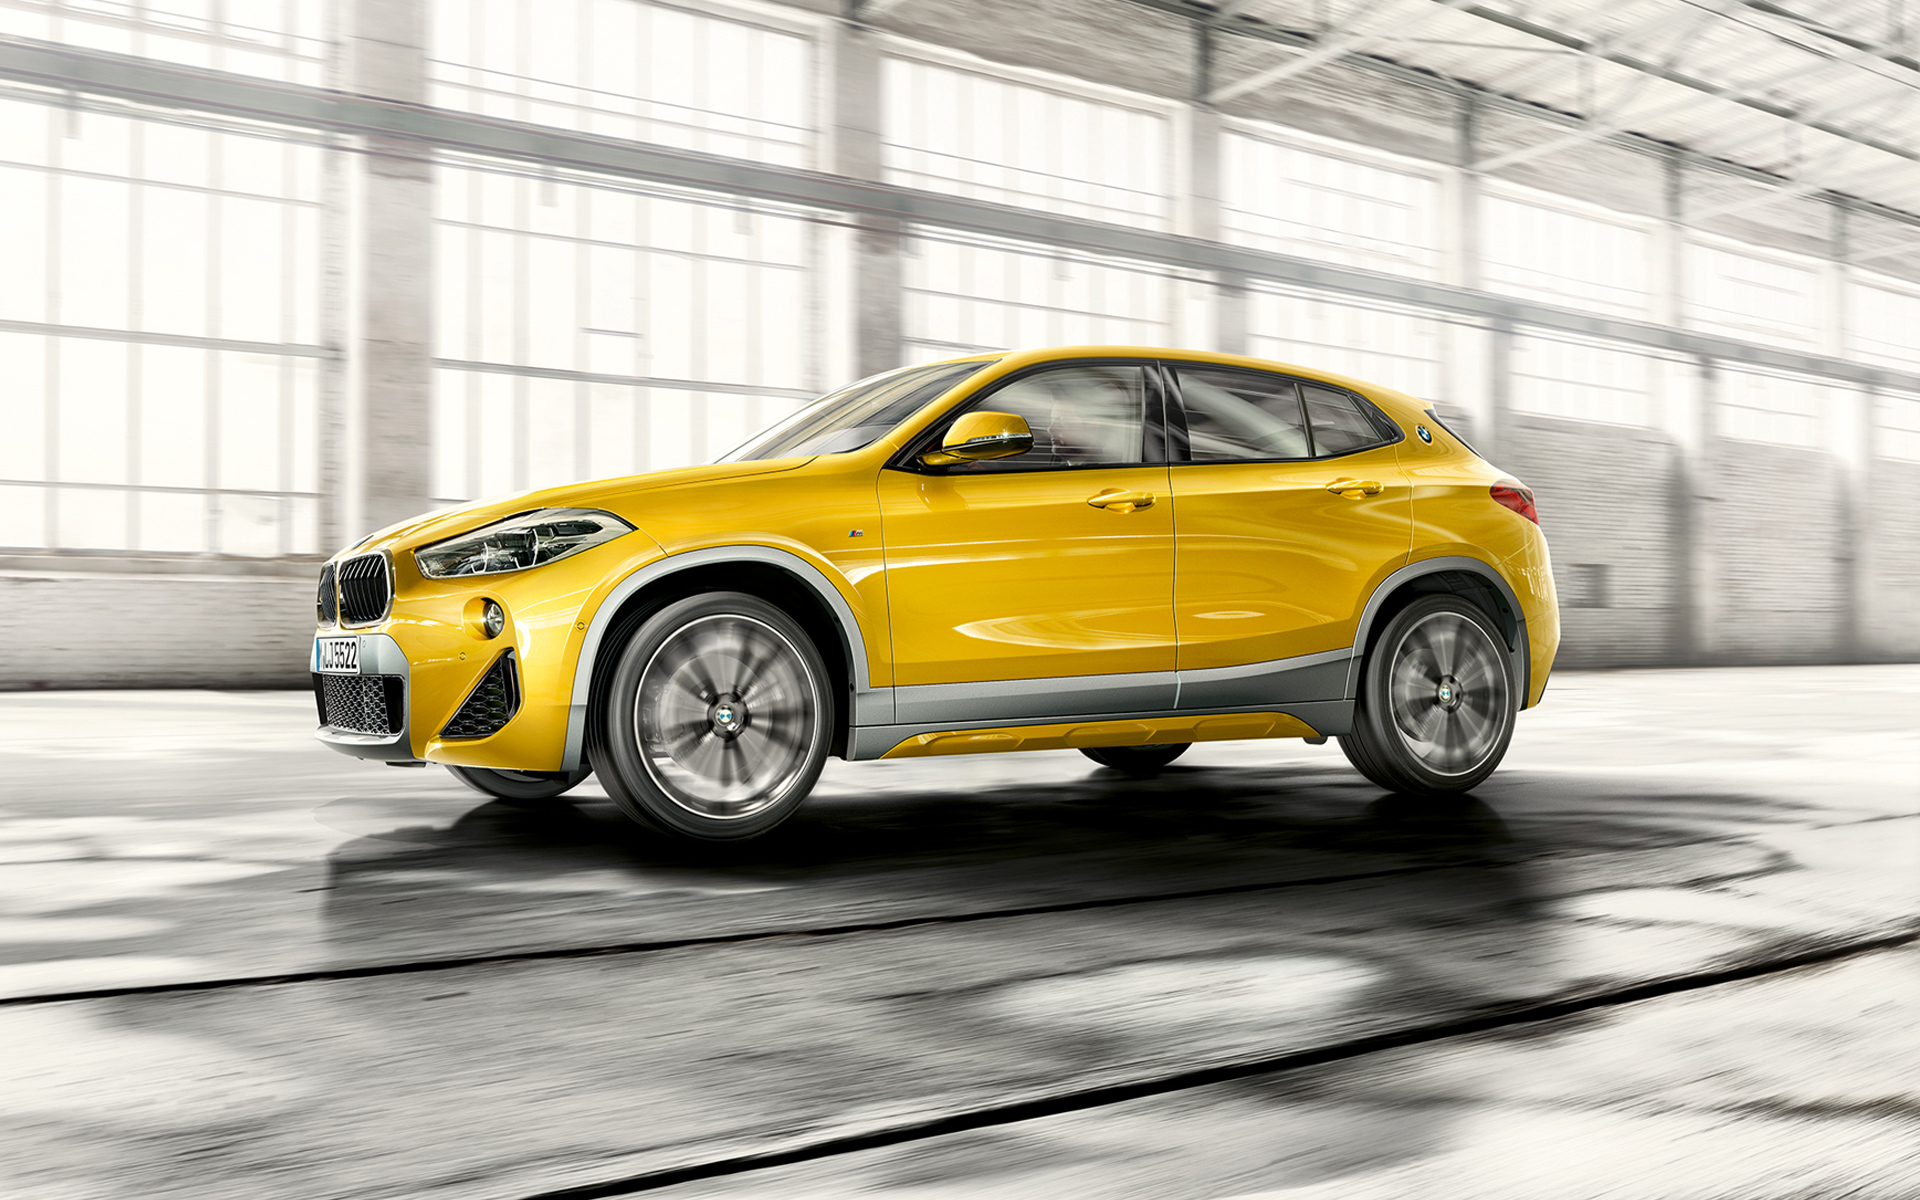 Bmw X2 Price From 39 200 Euro For Sdrive20i Diesel From